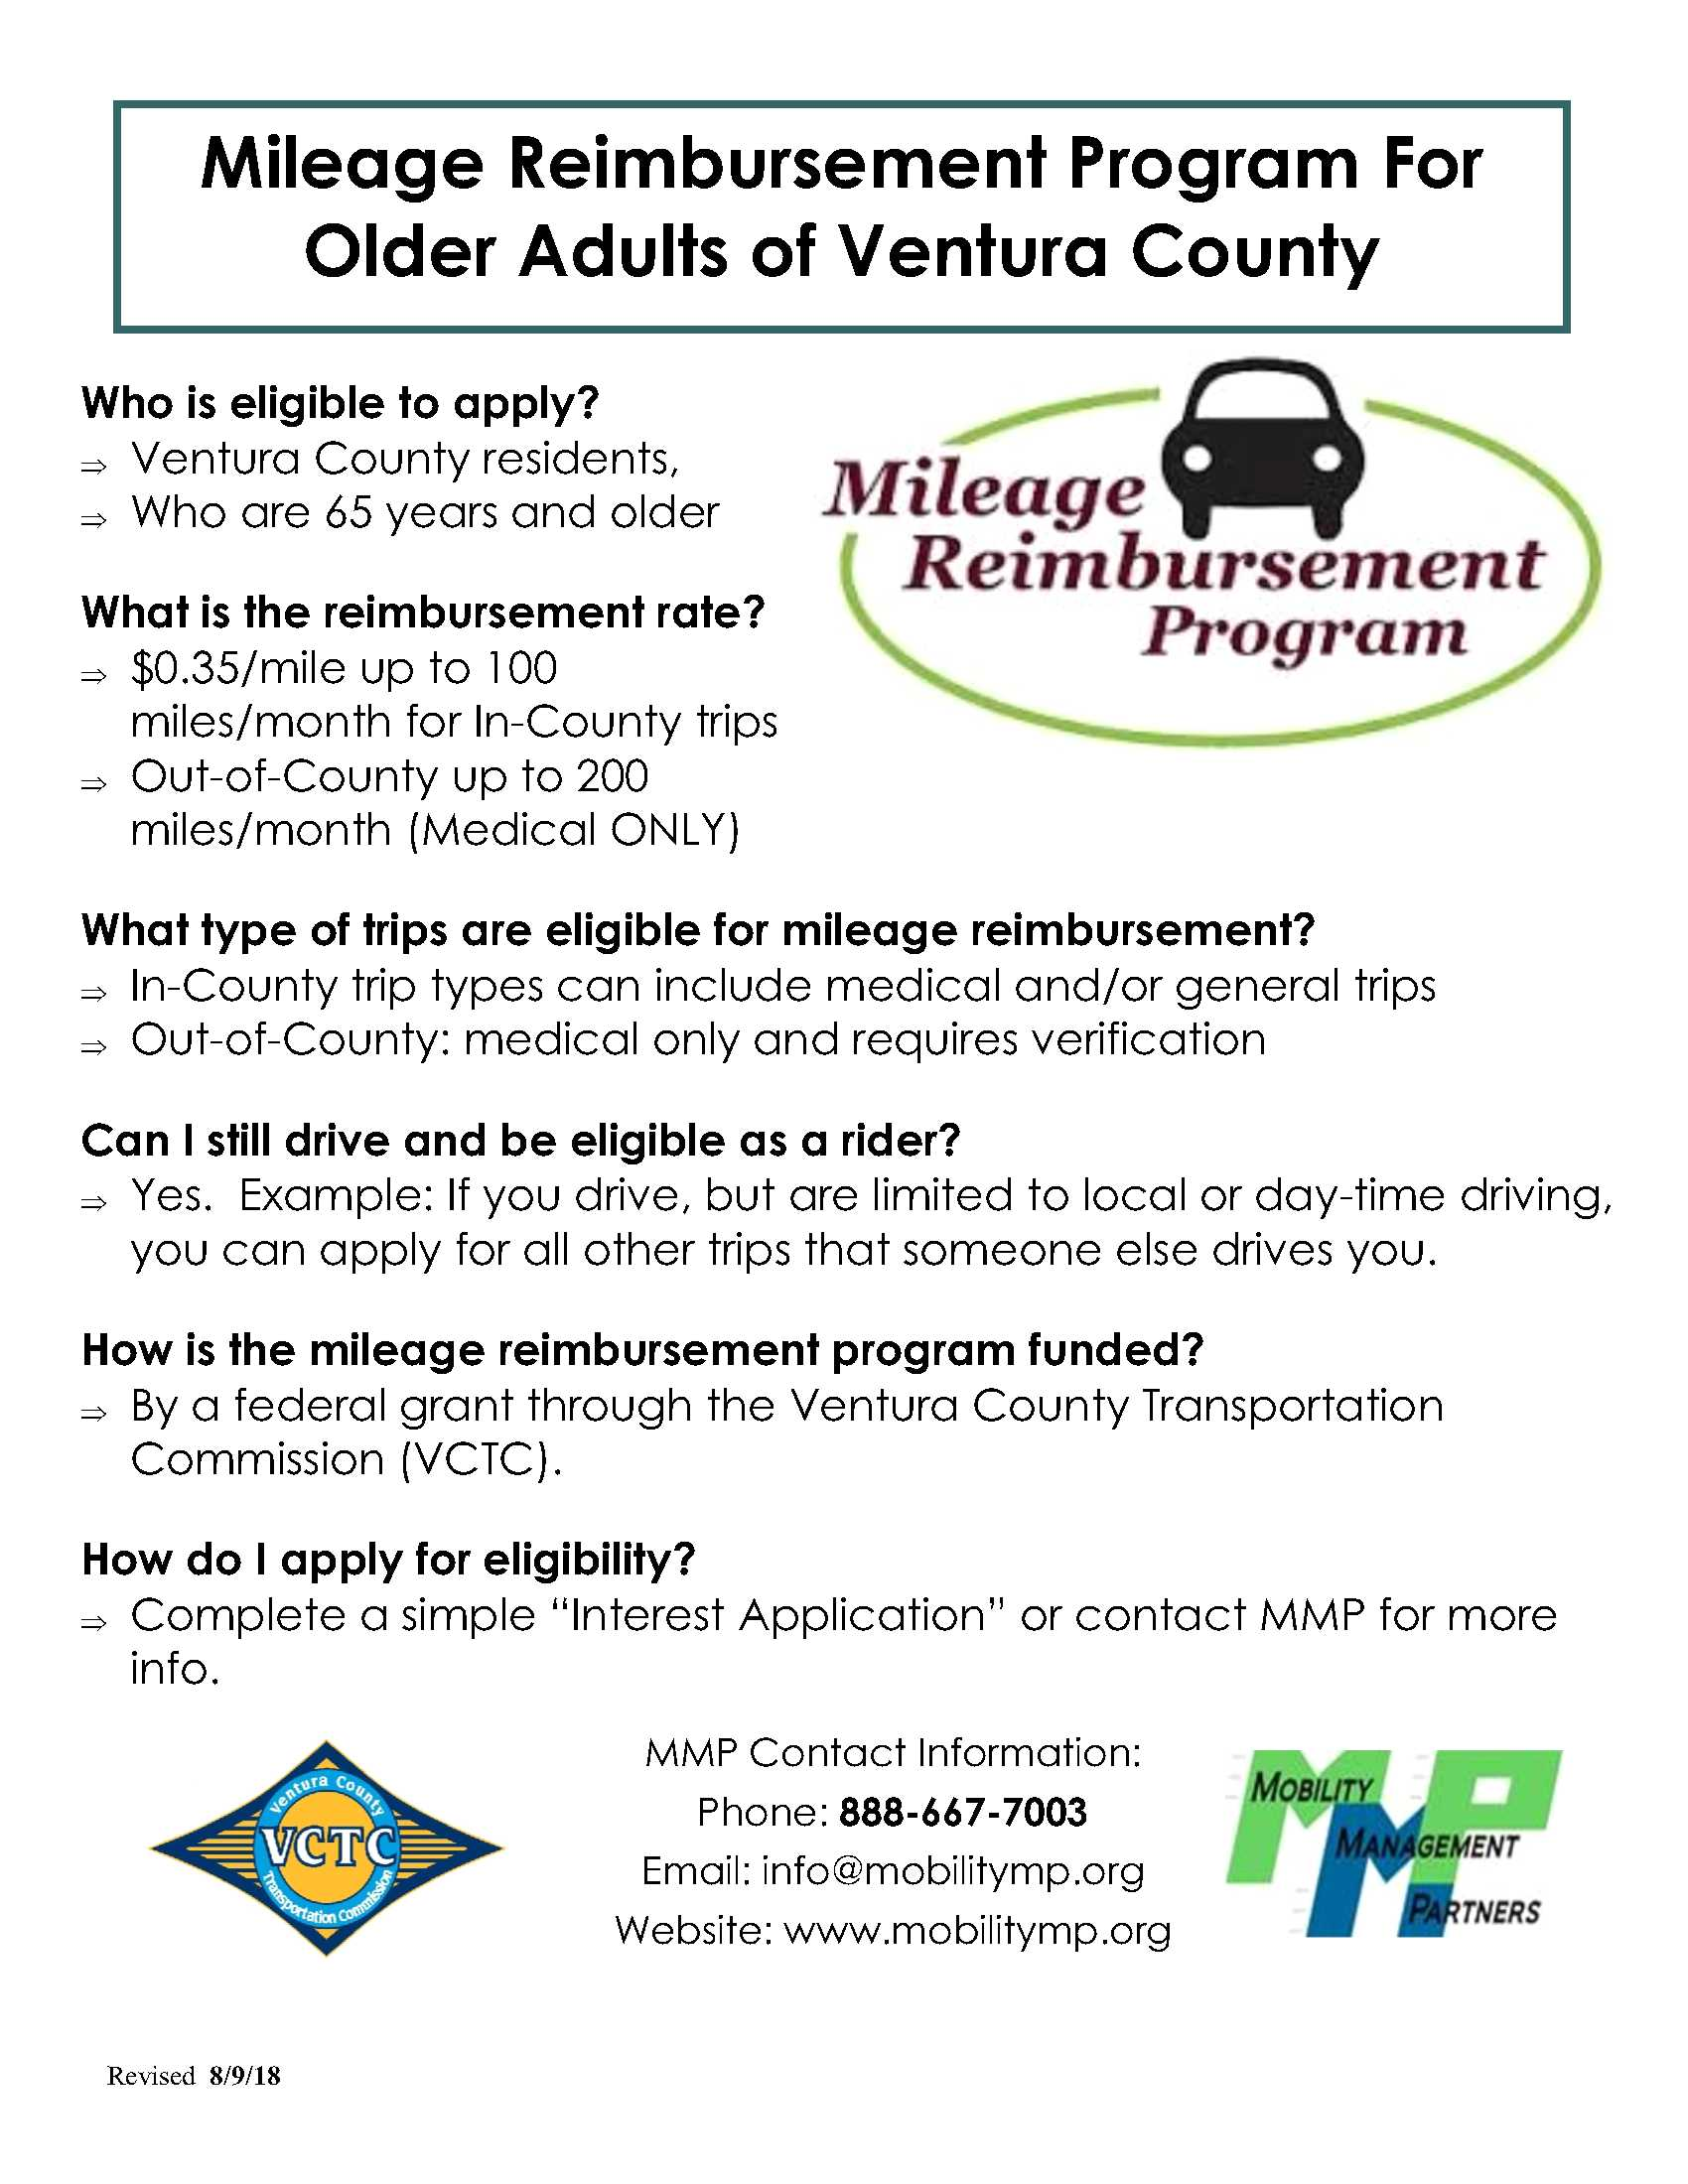 Mileage Reimbursement Program For Older Adults of Ventura County